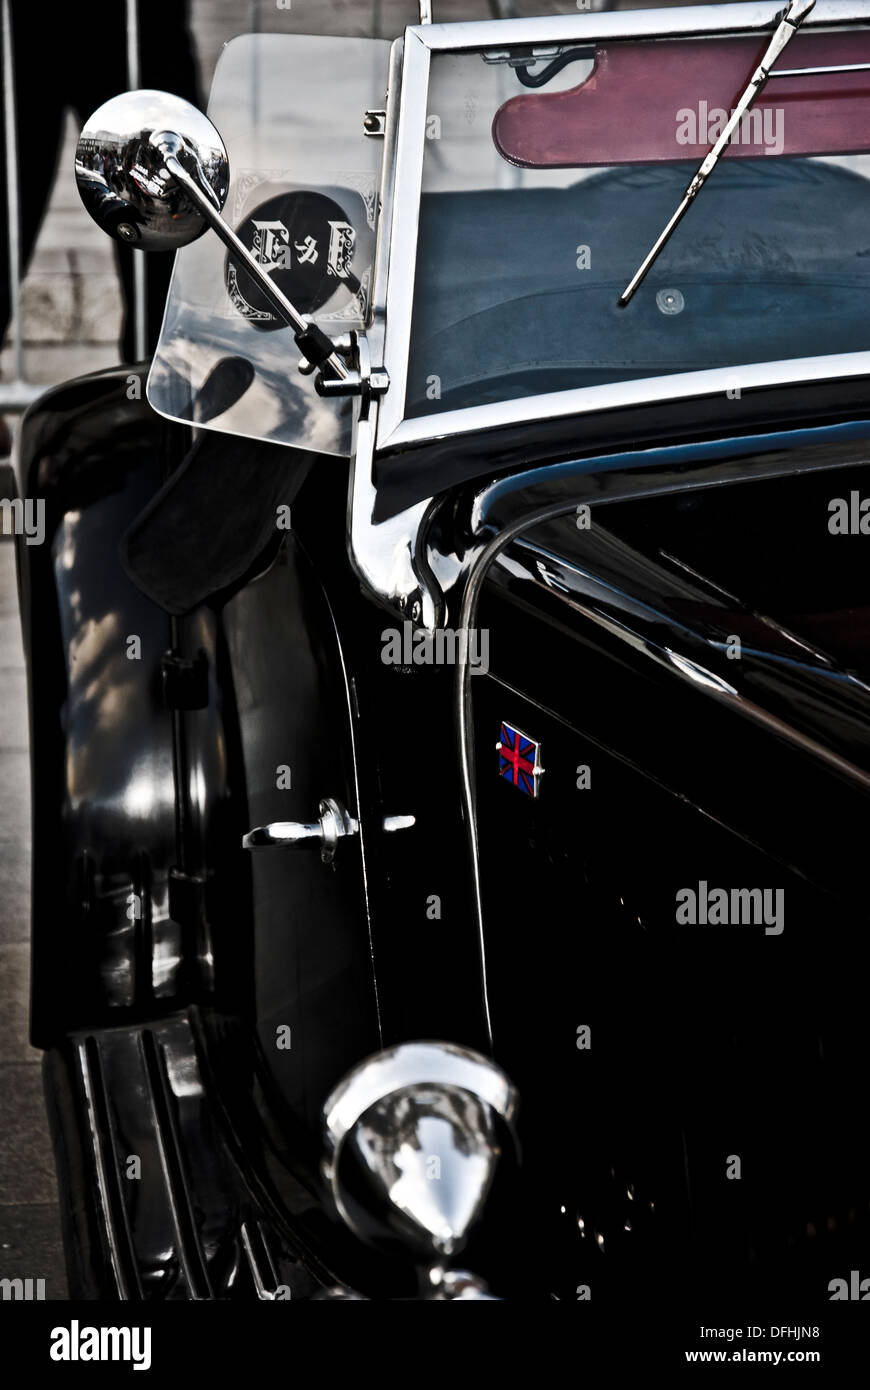 Detail of vintage car, 1930s Style - Stock Image